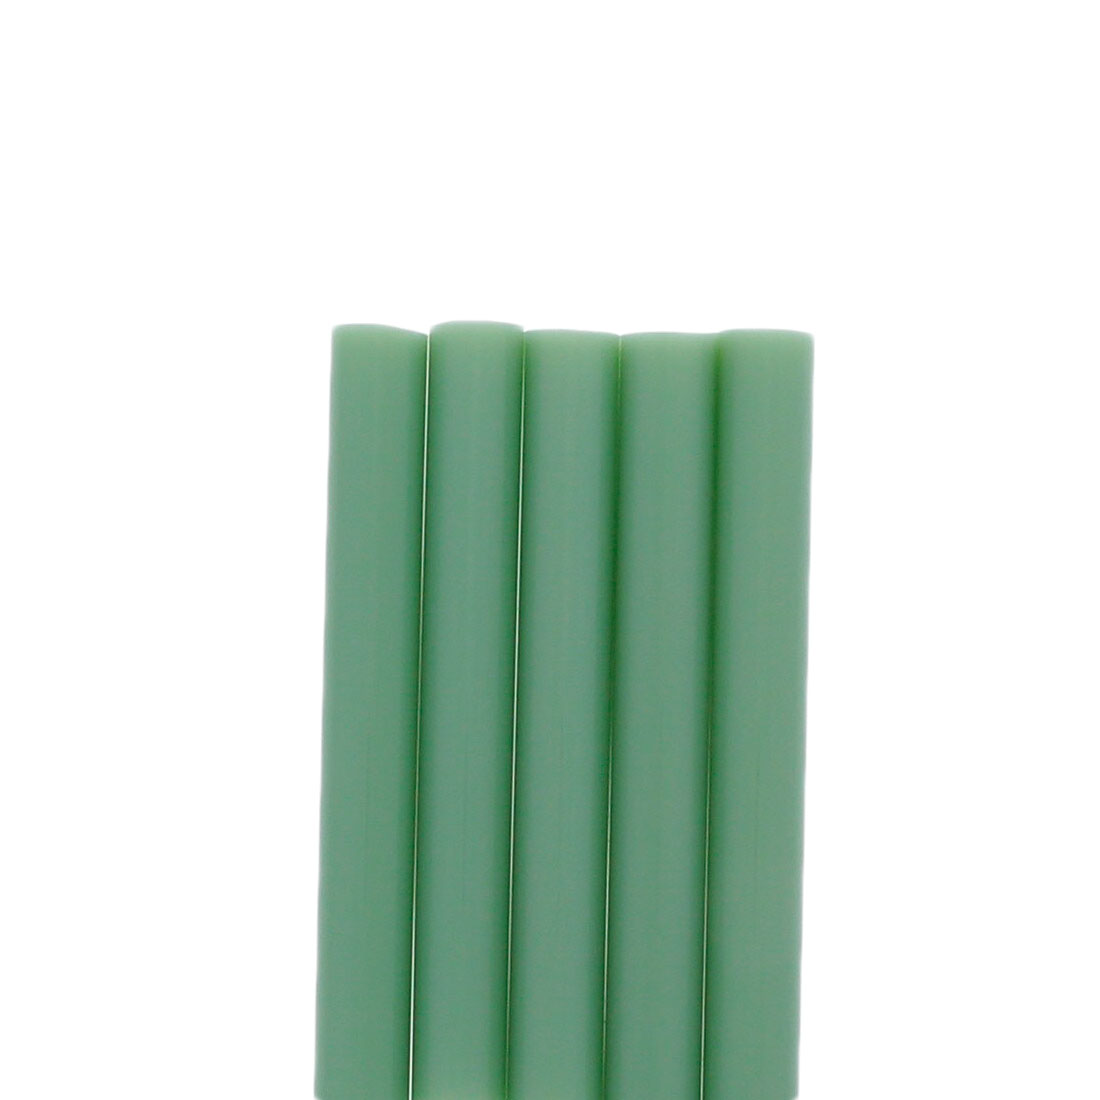 Asian 12mm LIGHT Jade Green Tubing